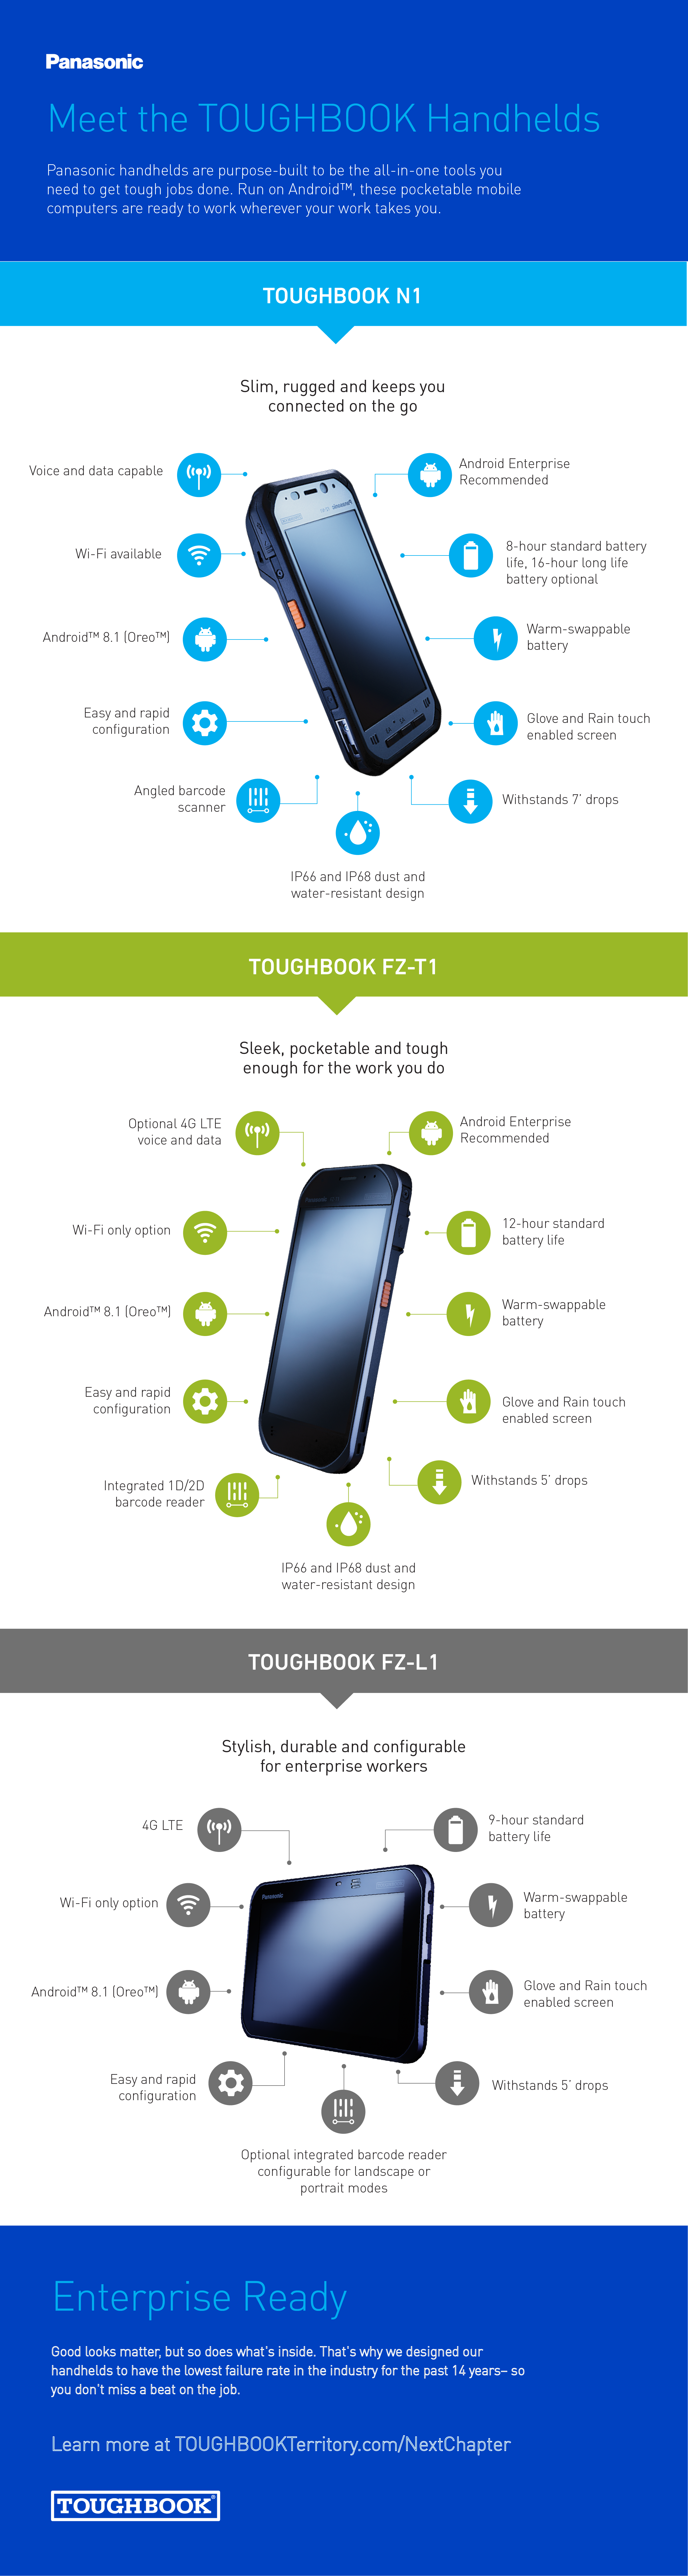 Toughbook_Handhelds_5.11 (1).png